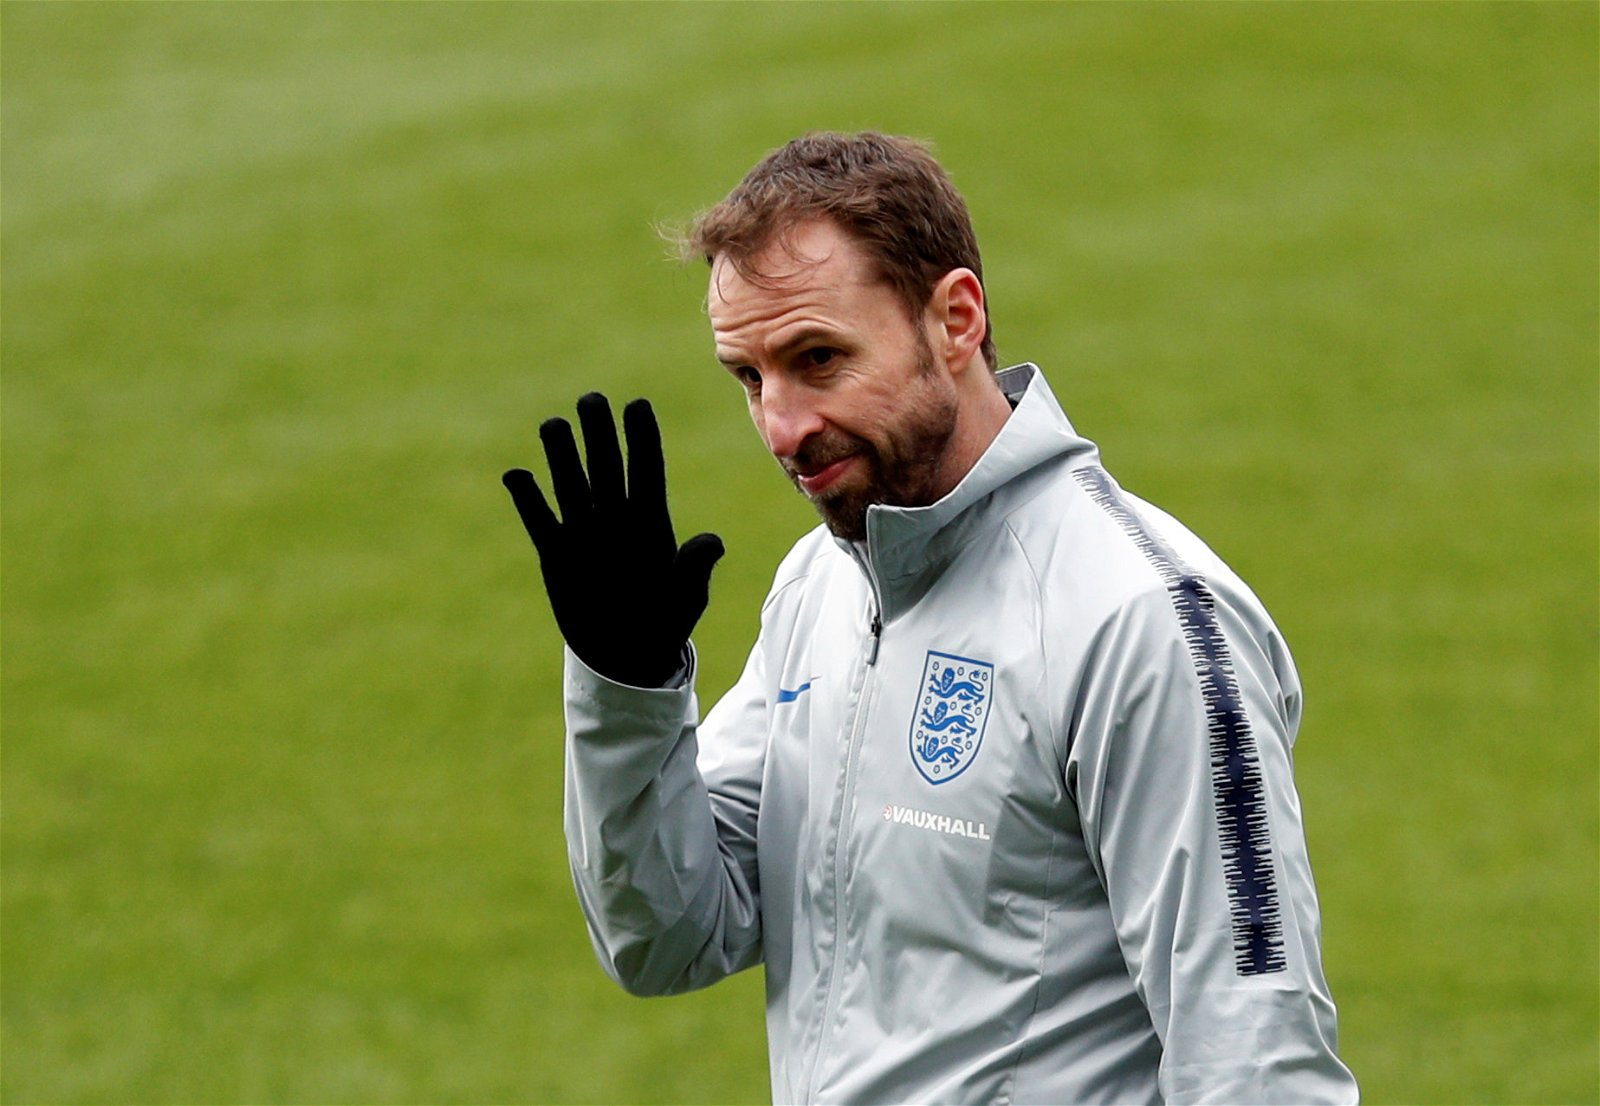 Gareth Southgate waves to the cameras